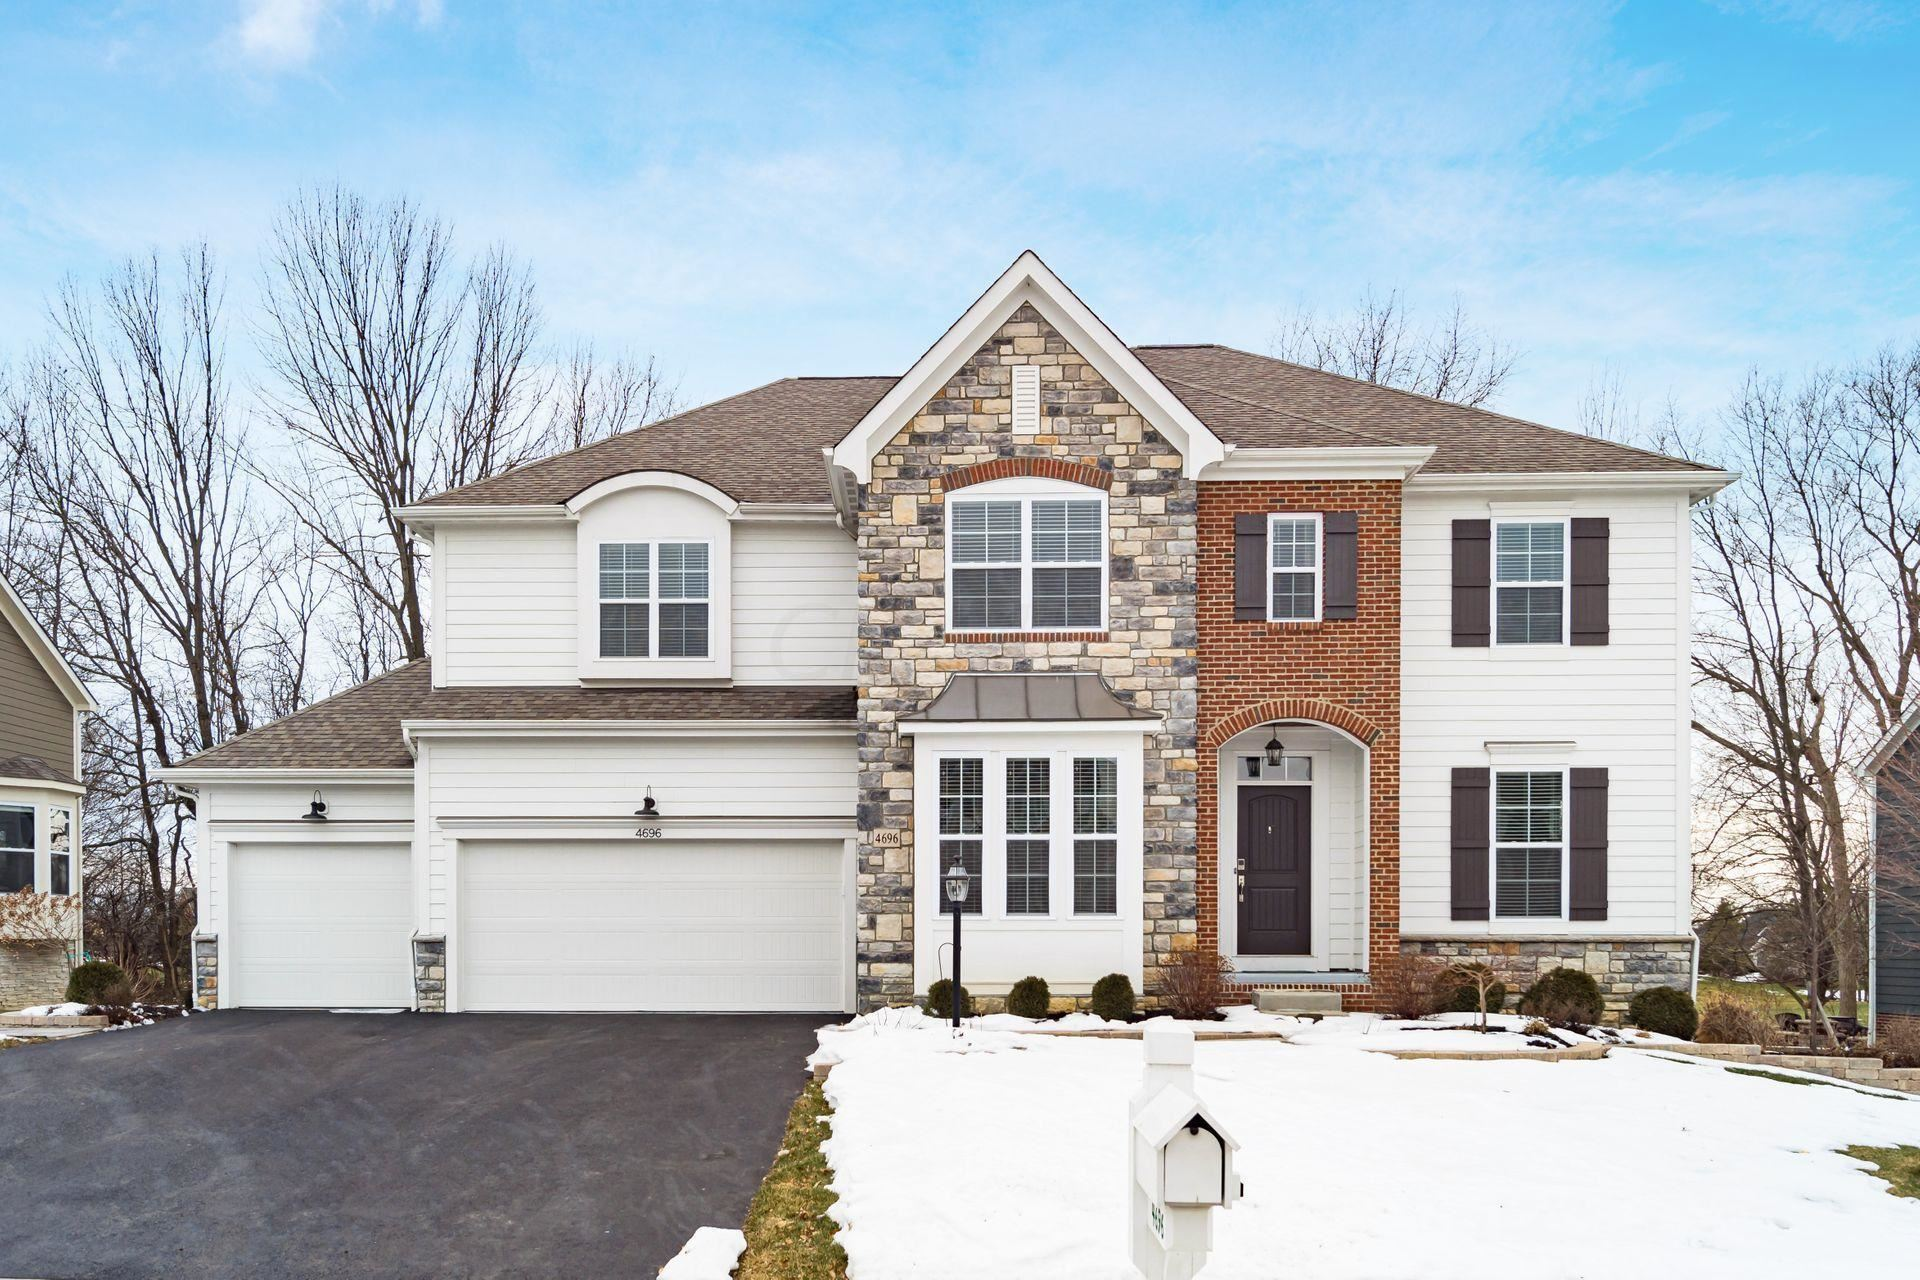 4696 Royal Birkdale Drive, Westerville, OH 43082 - MLS#: 221005805